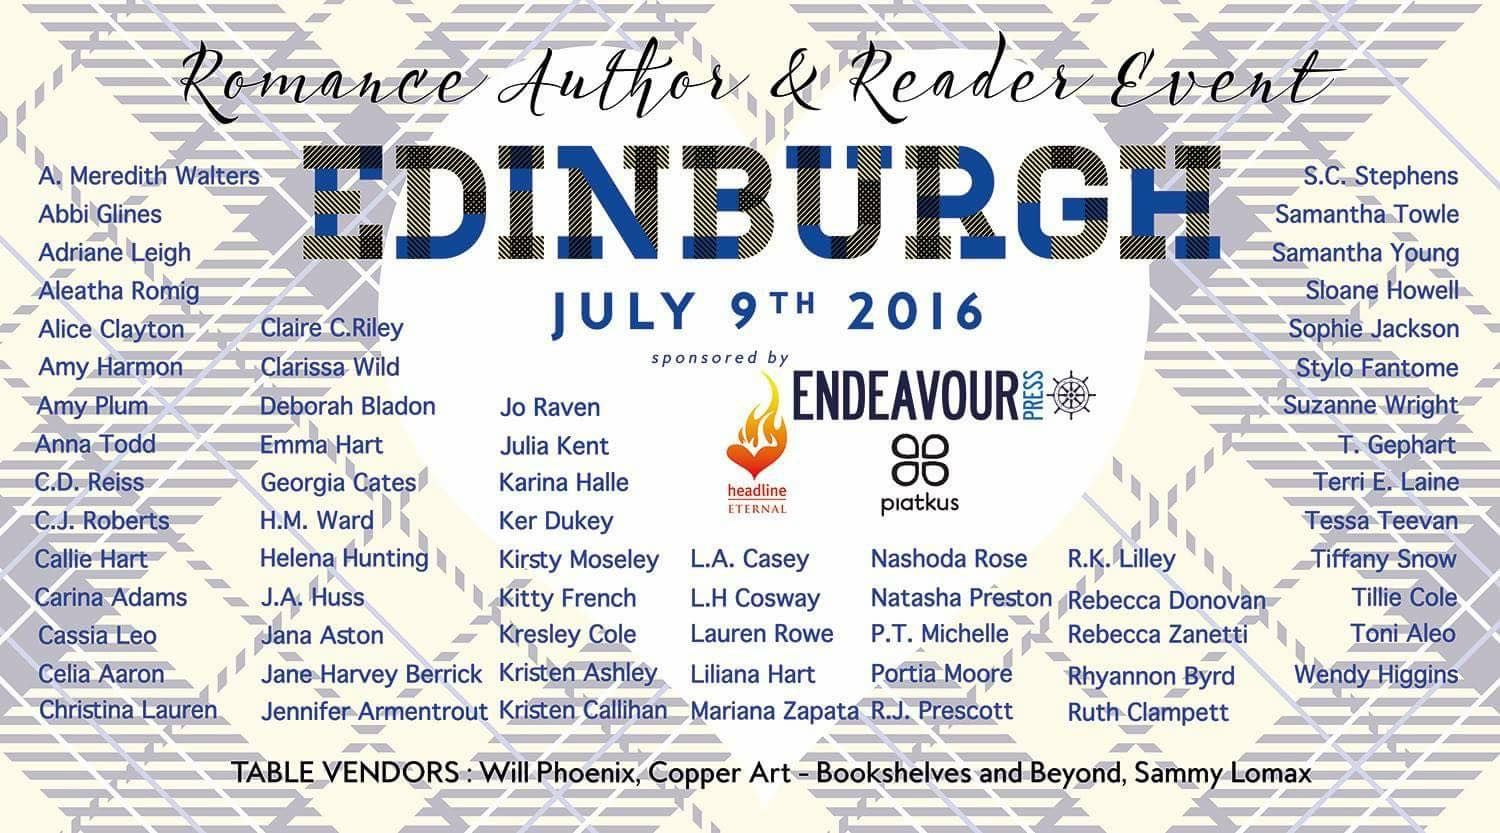 Book Crazy: My Time At The Romance Author & Reader Event 2016!